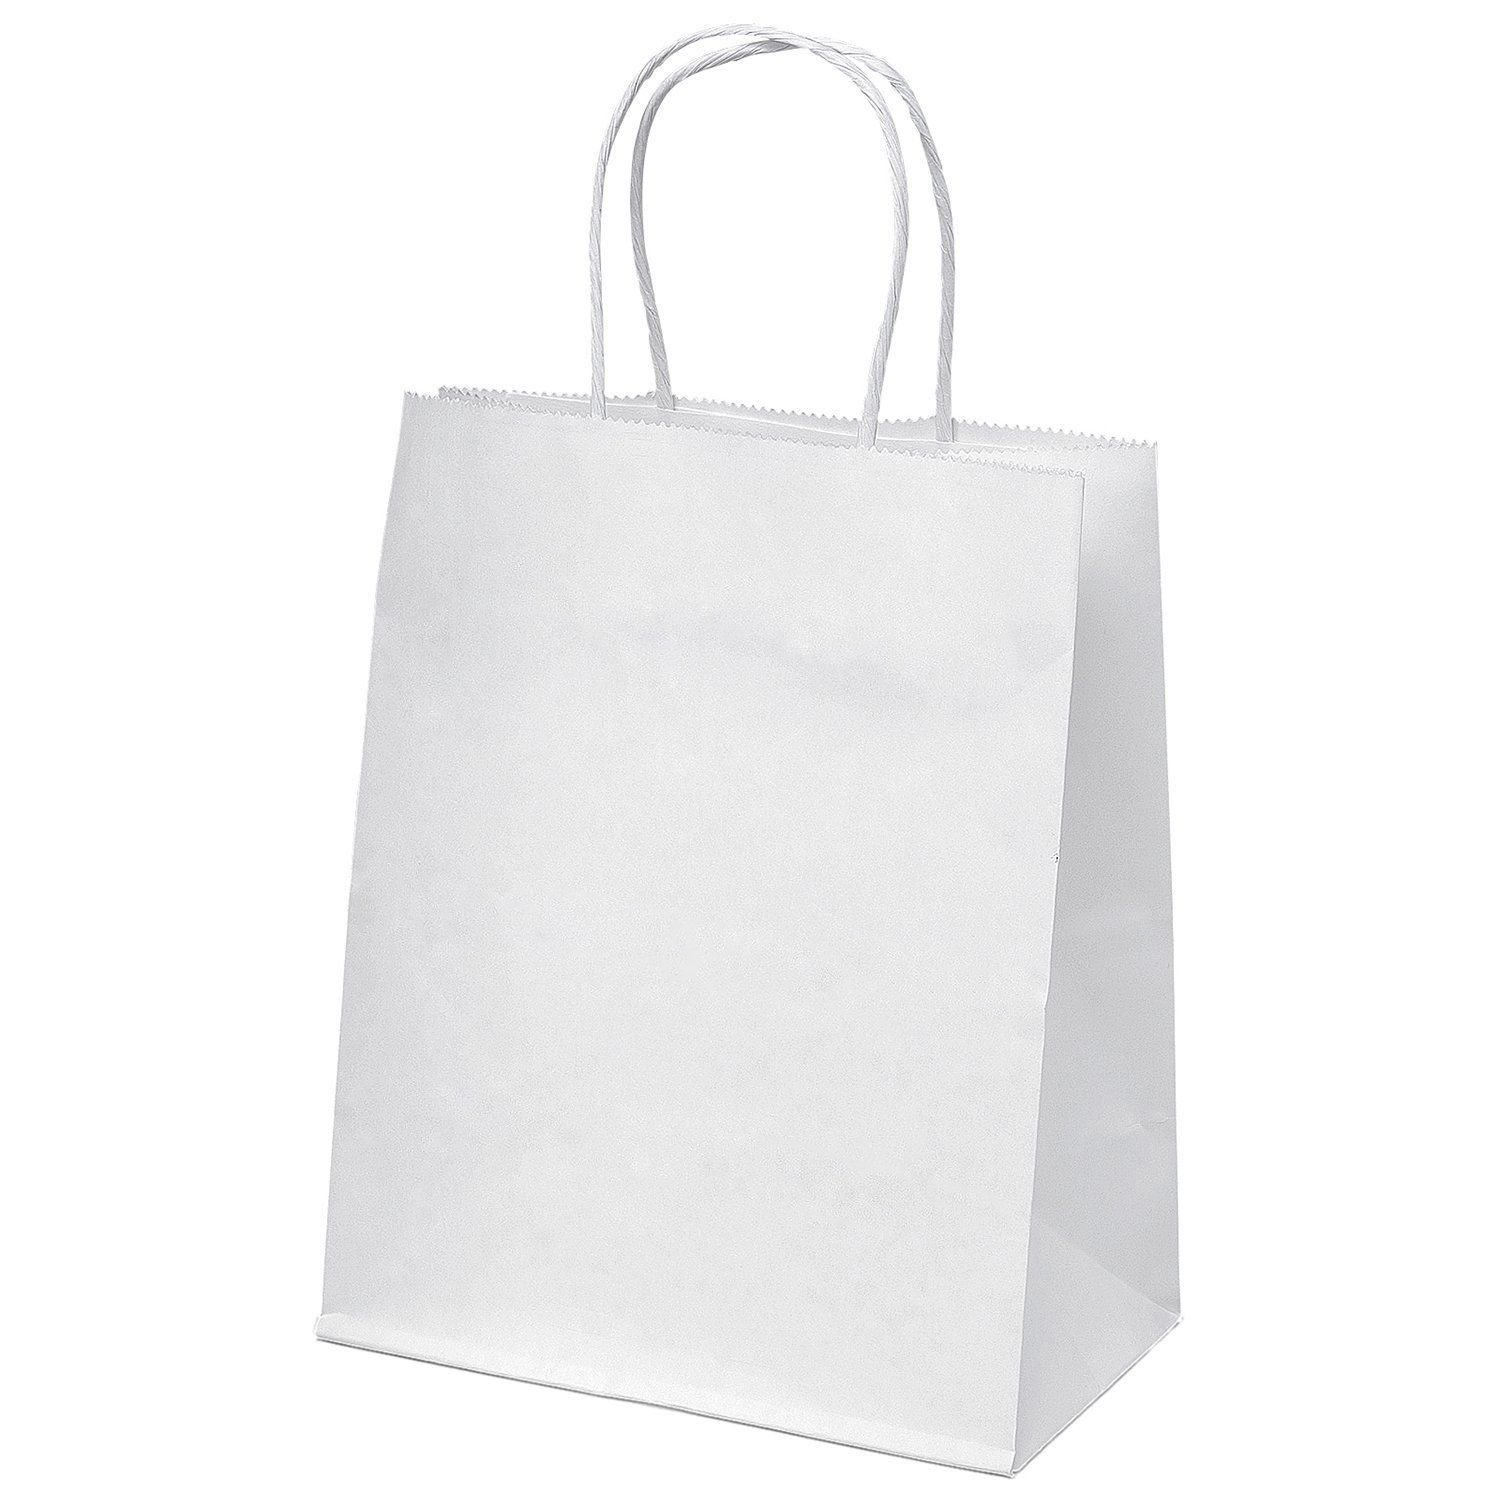 "Baby White Bag with Rope Handle ""260X170X50mm"""